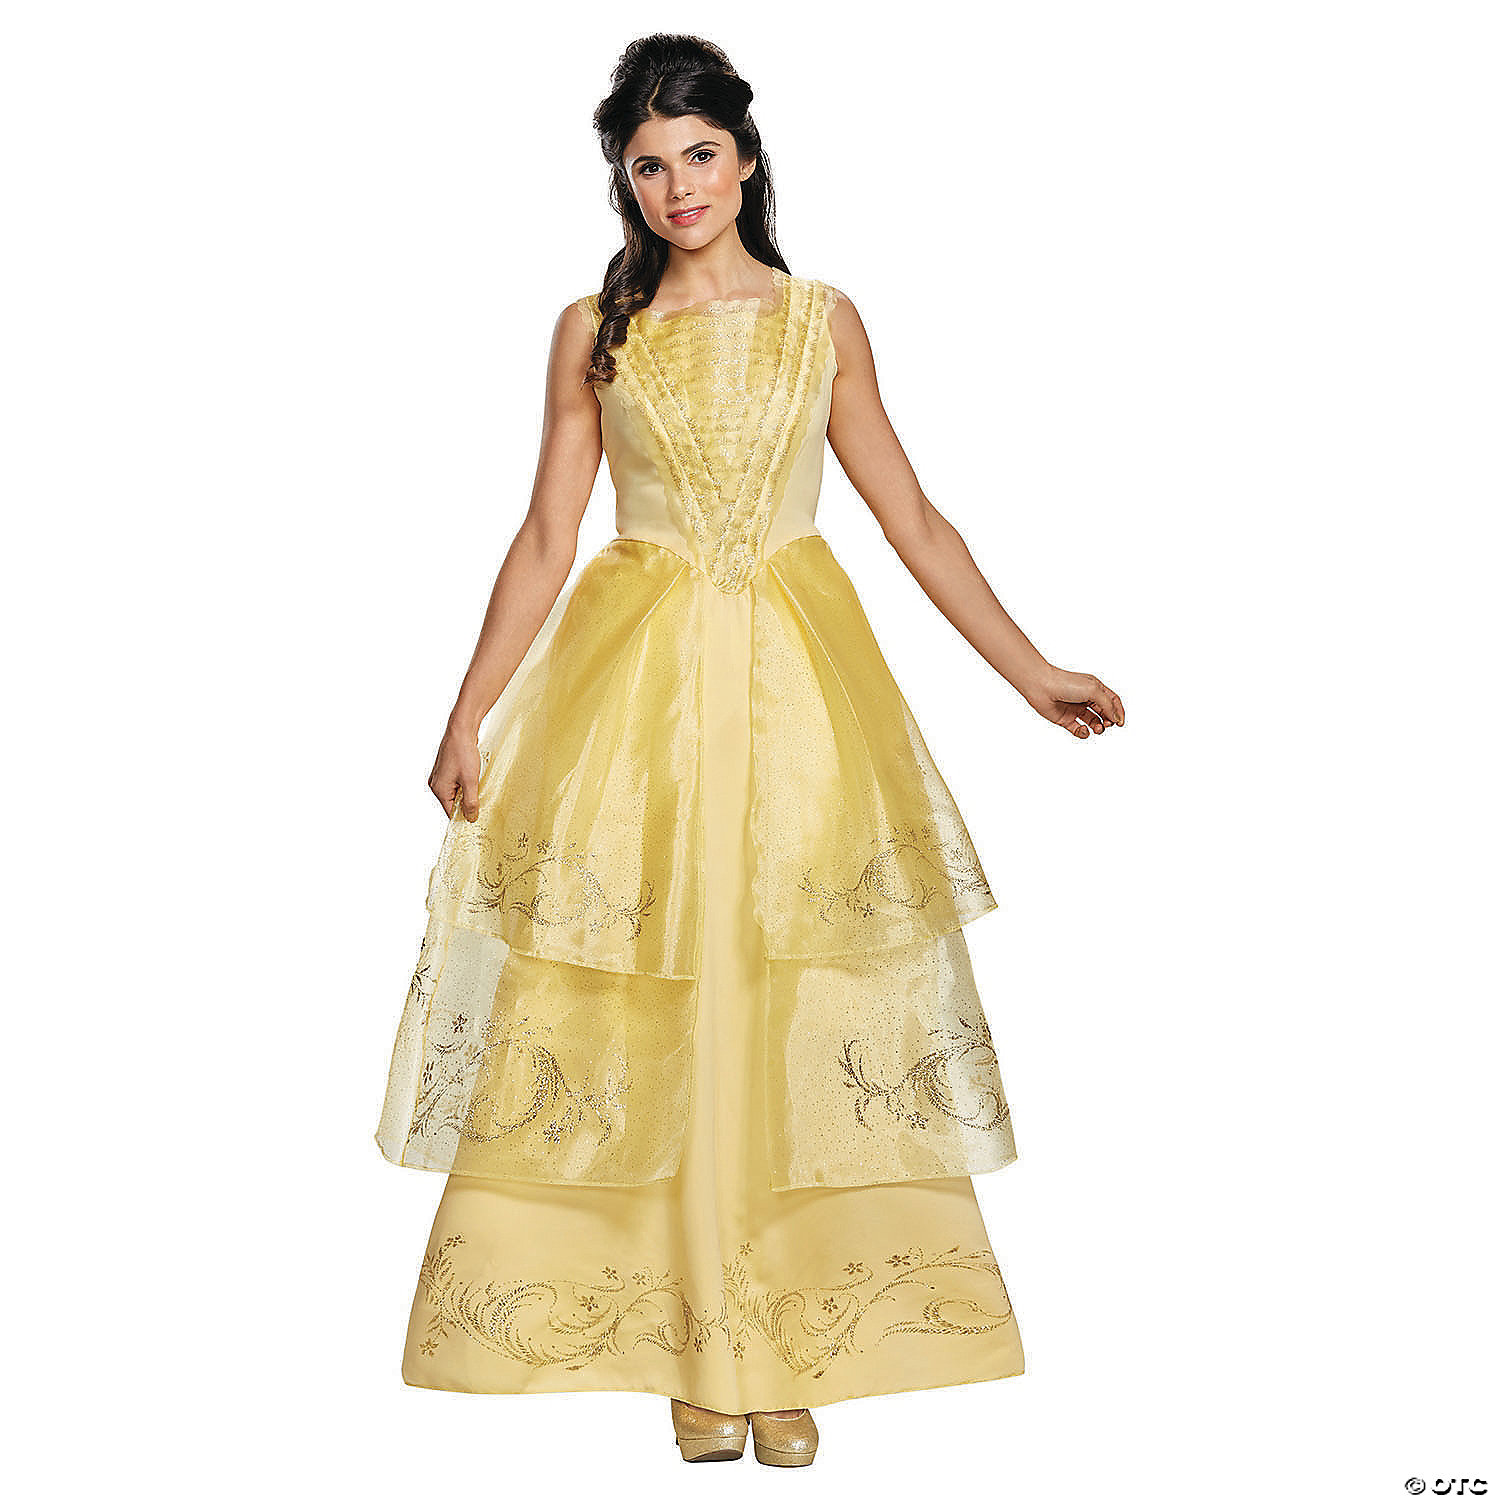 52e638661d9 Women's Beauty and the Beast™ Belle Ball Gown Costume